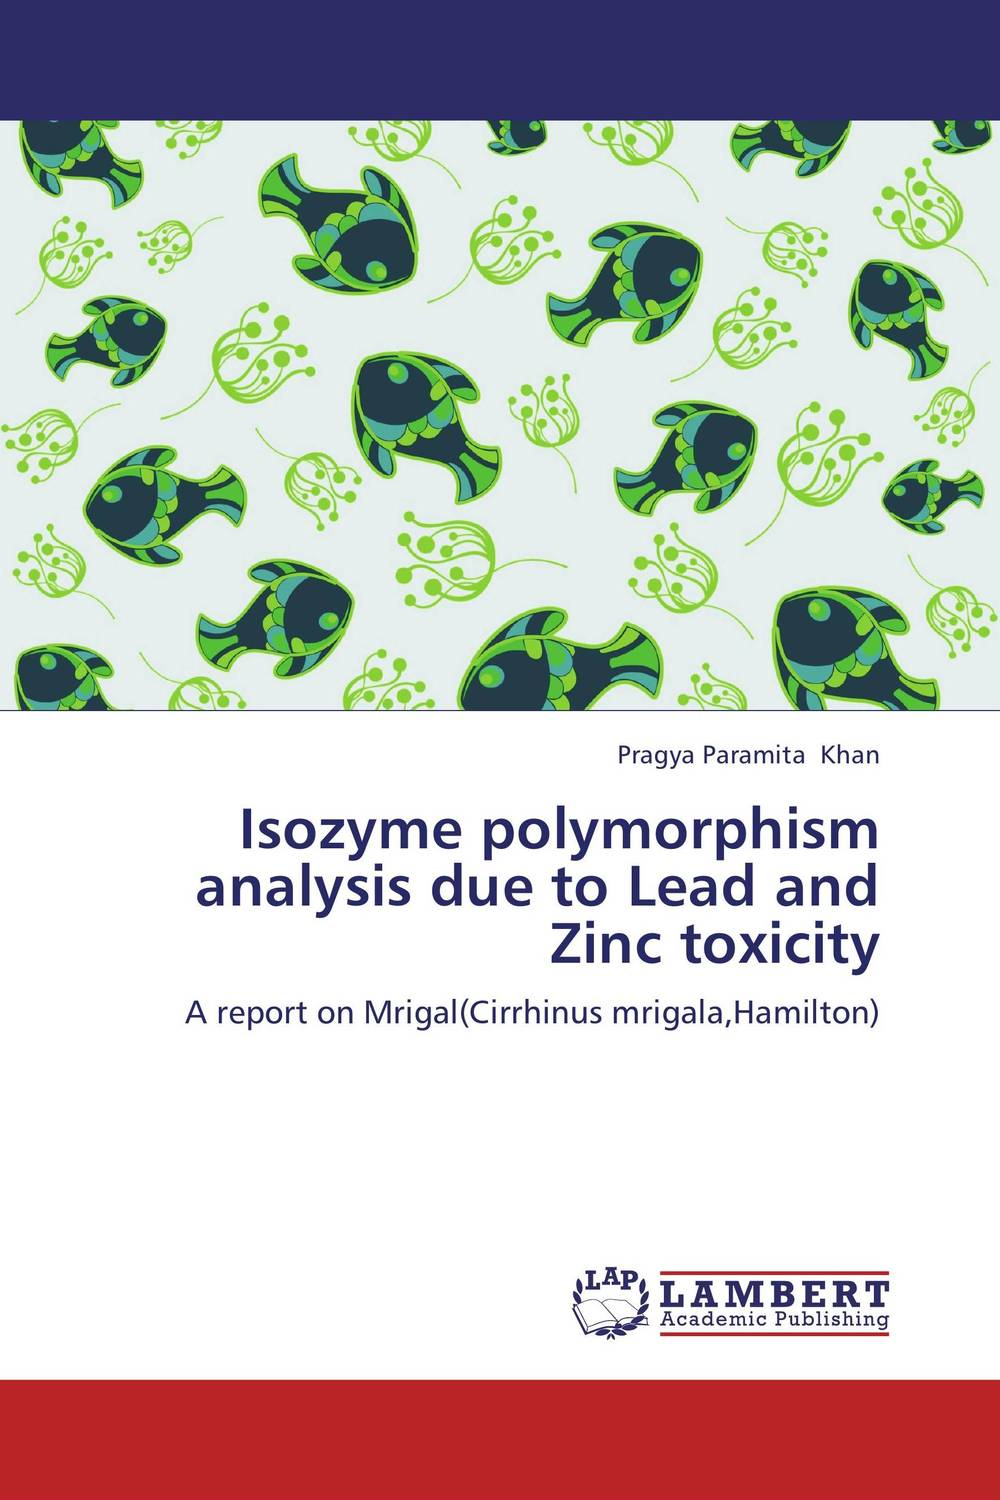 Isozyme polymorphism analysis due to Lead and Zinc toxicity toxicity in crustaceans and fishes